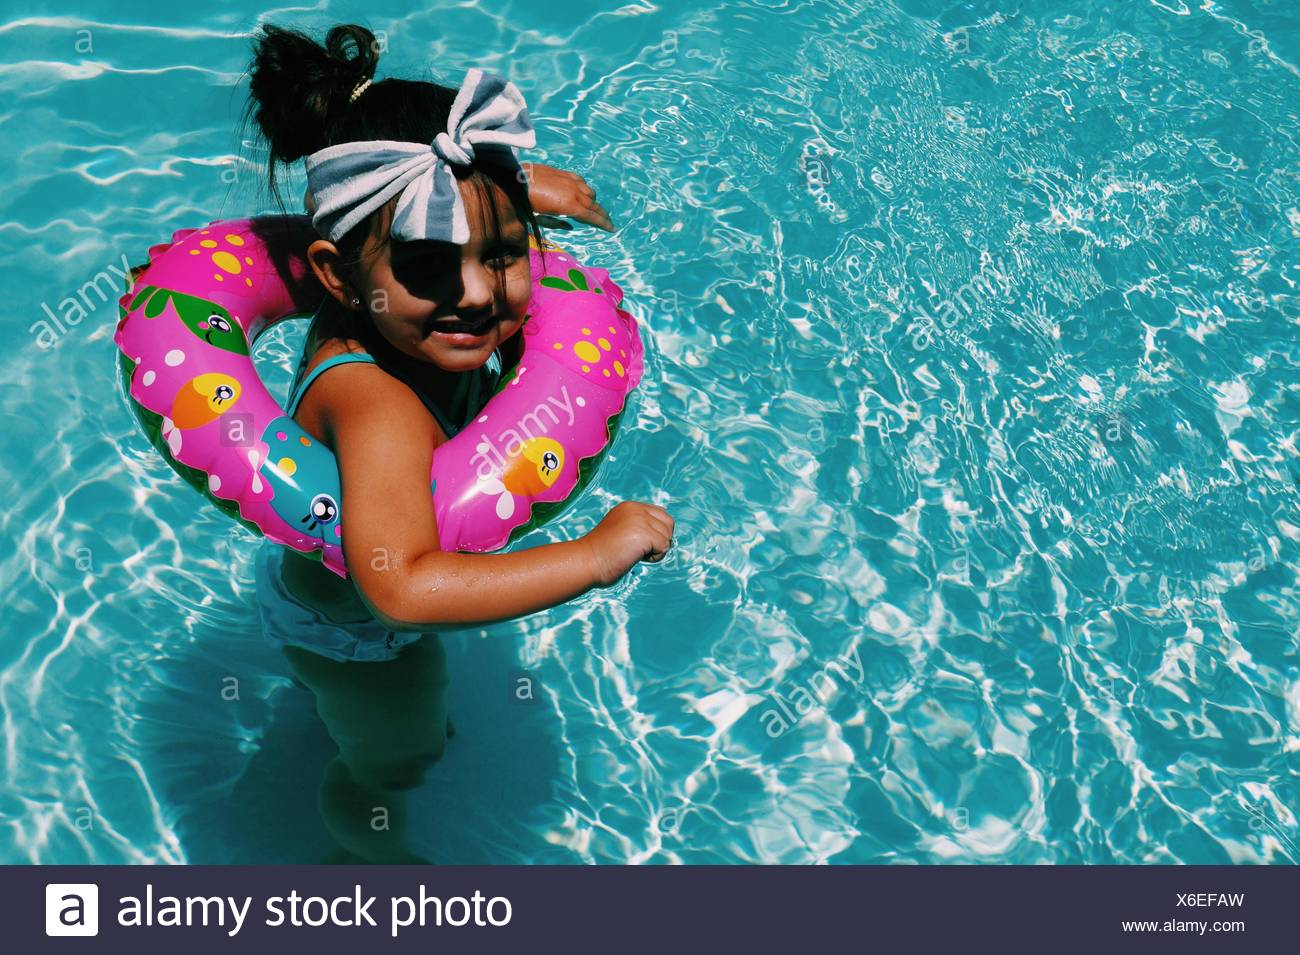 High Angle View Of Happy Girl Swimming In Pool With Life Belt Stock Photo